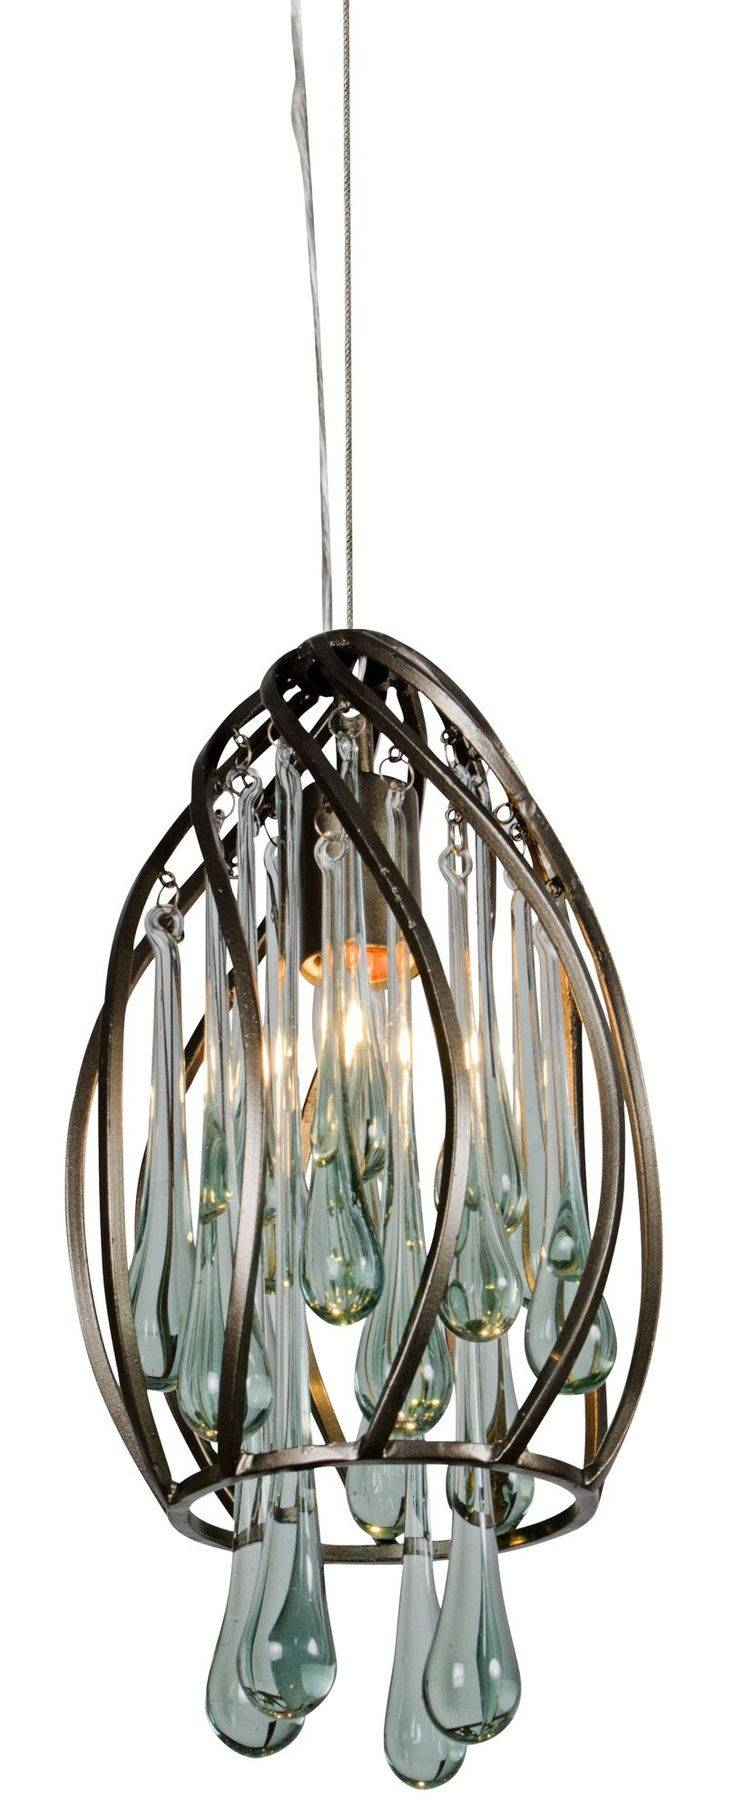 38 Best Lighting Images On Pinterest | Chandeliers, Light Fixtures Within Recycled Glass Lights Fixtures (Photo 6 of 15)